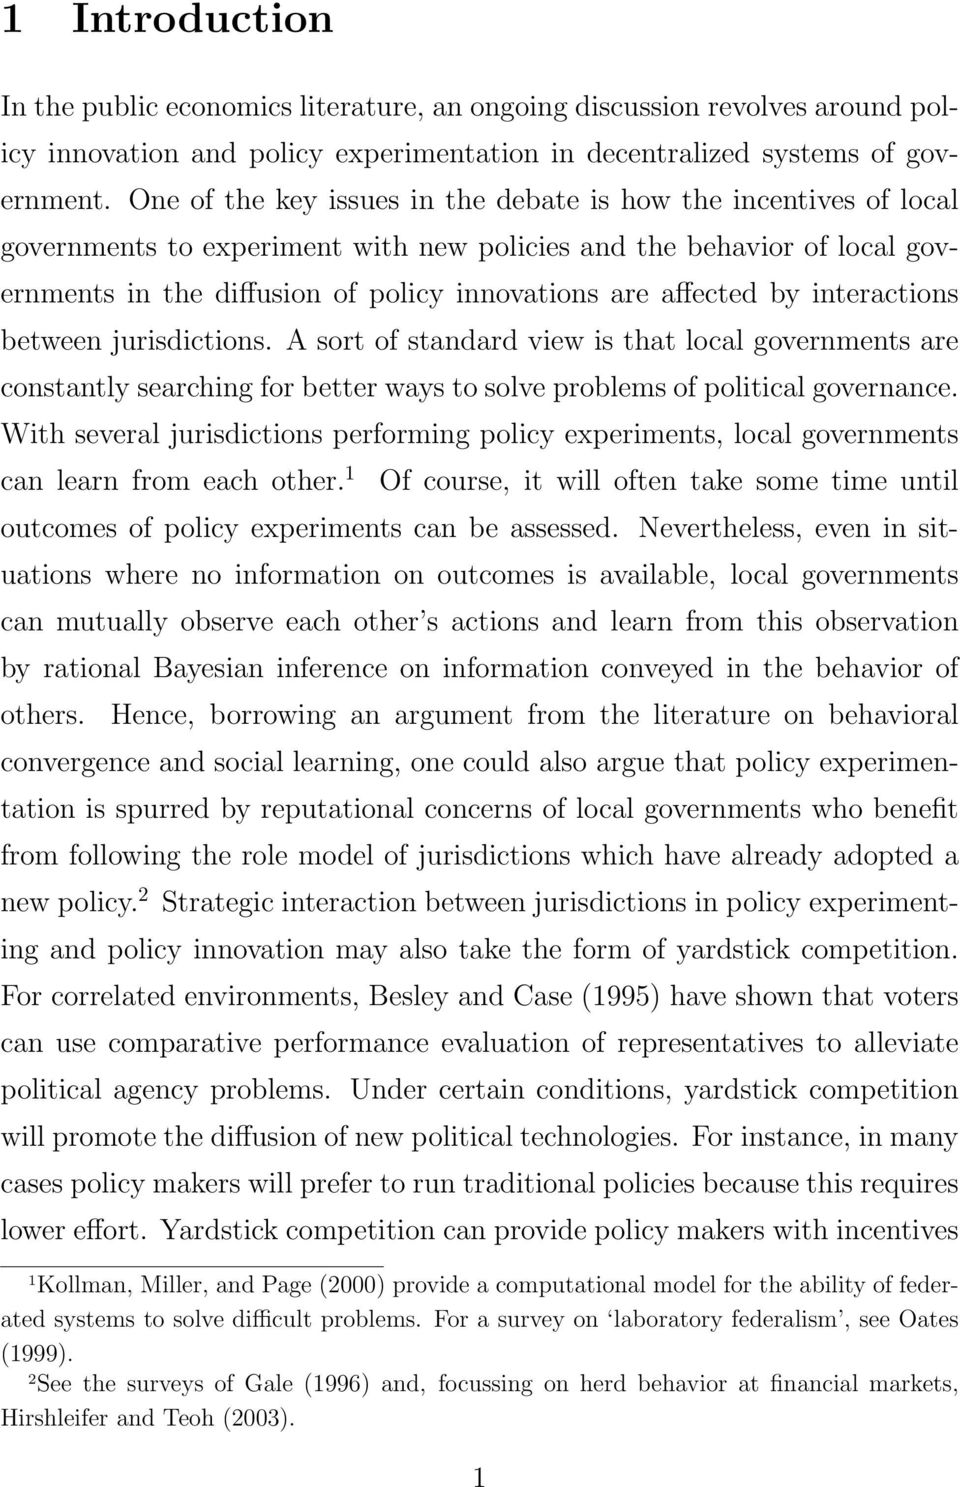 affected by interactions between jurisdictions. A sort of standard view is that local governments are constantly searching for better ways to solve problems of political governance.